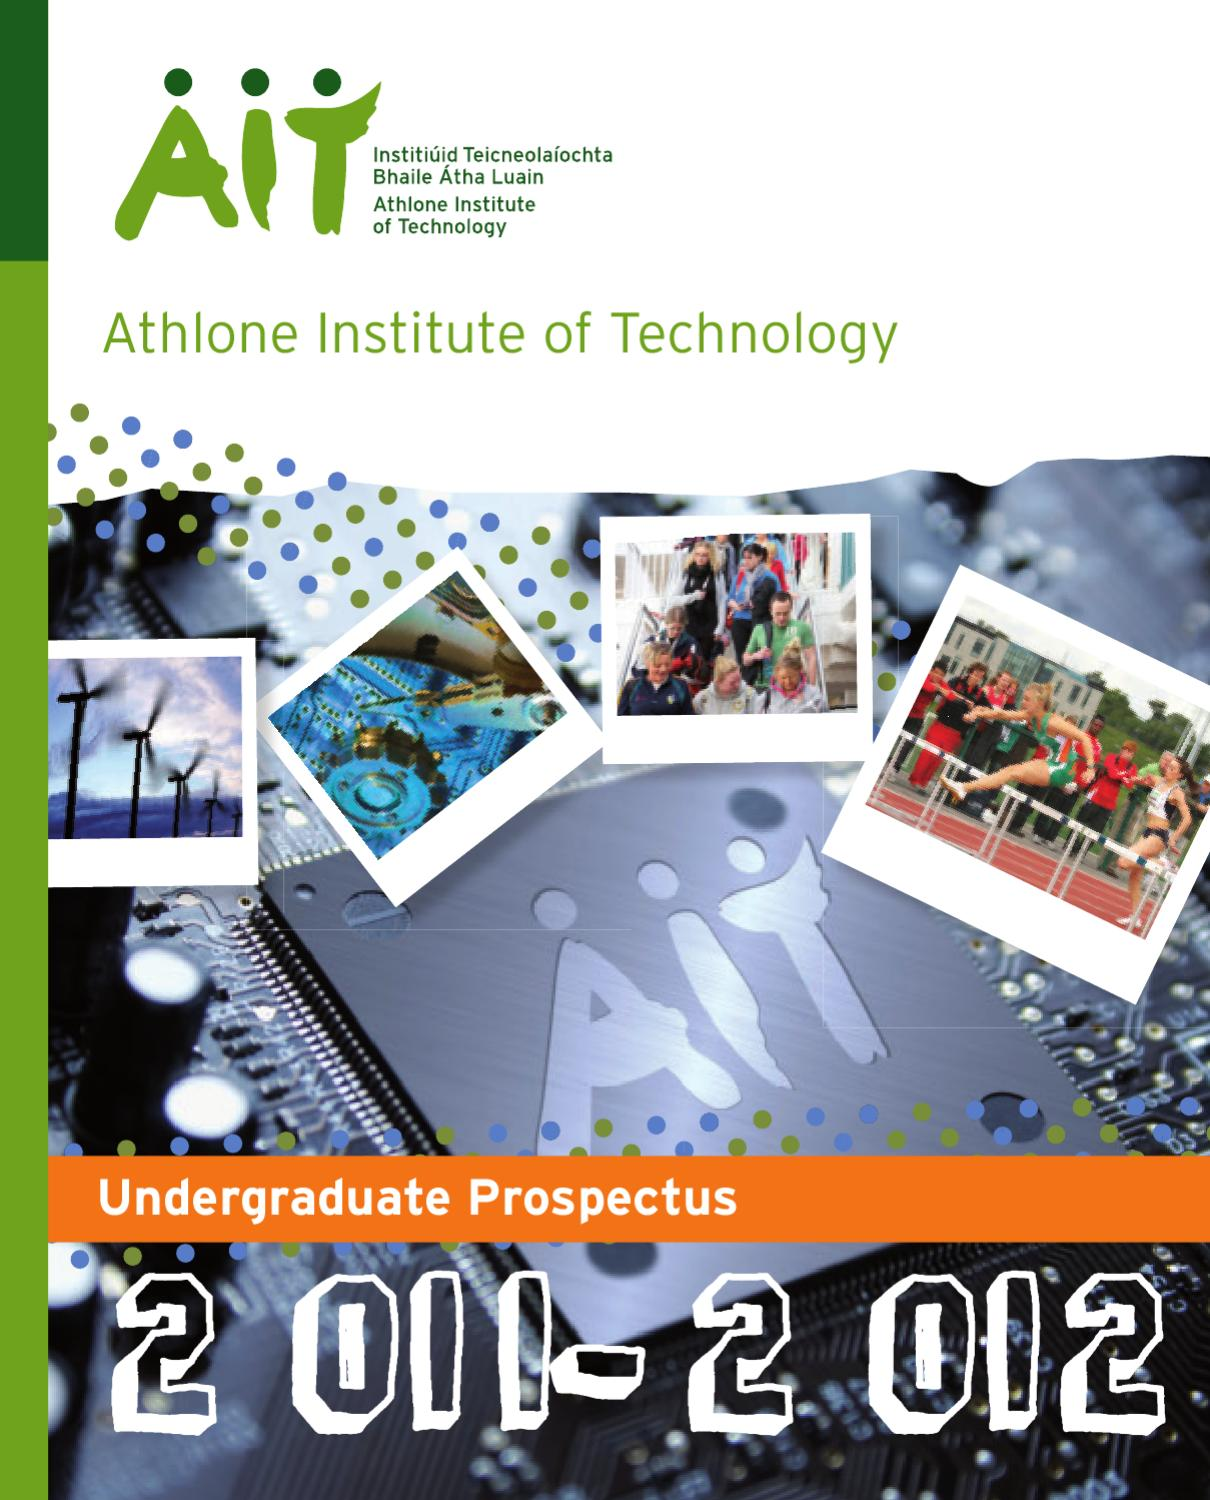 Athlone Institute of Technology: Rankings, Fees & Courses